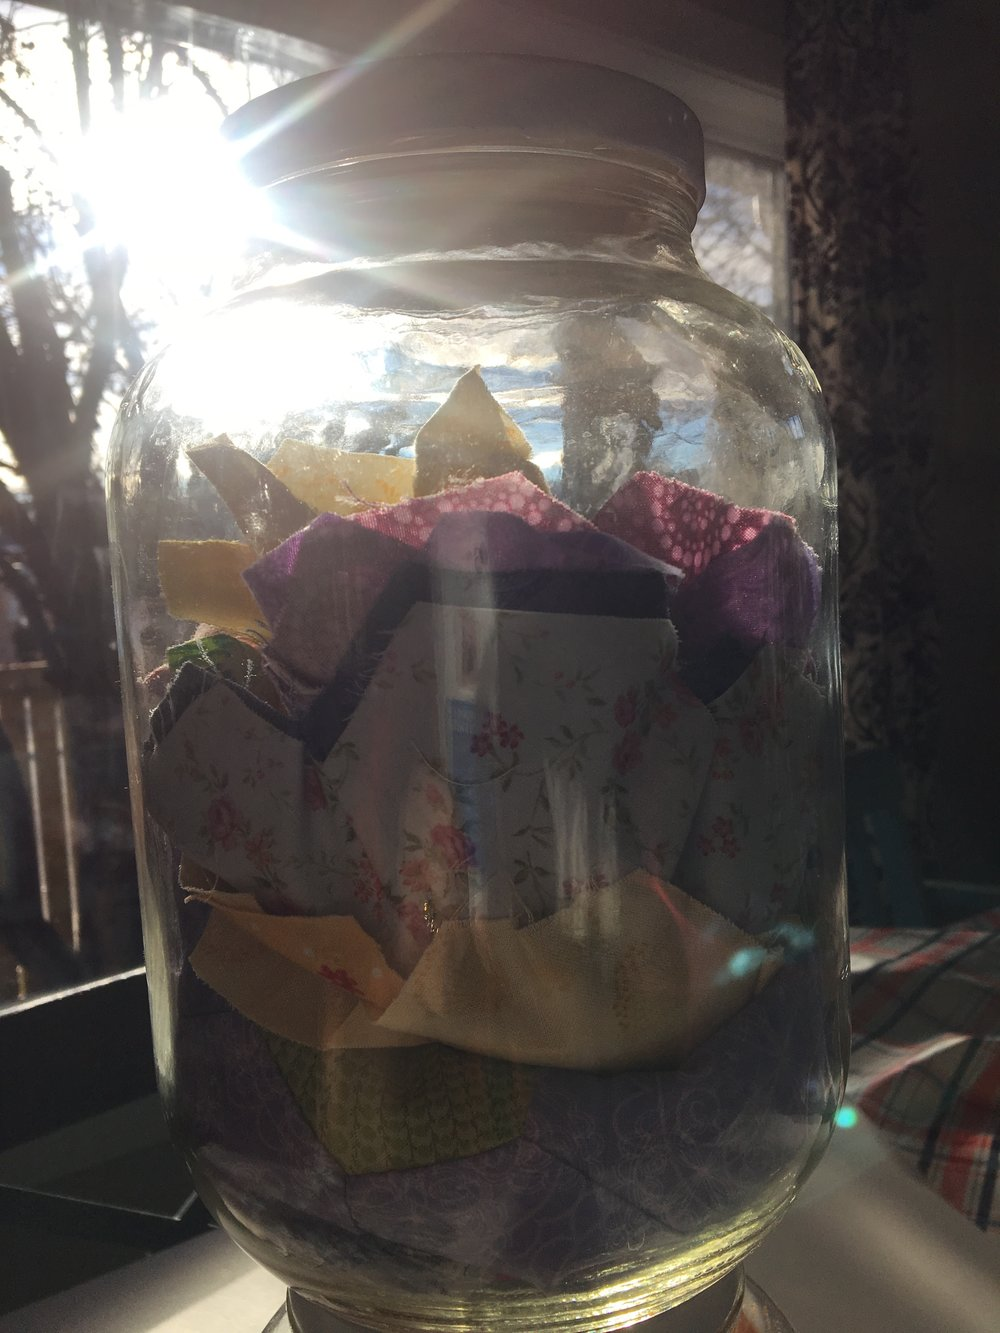 This was one of my grandma's jars. She died when I was 7. She was an extremely talented seamstress and quilter, basically a fabric magician. She is one of the reasons I started to sew when I was 10. I feel connected to her when I create with fabric.